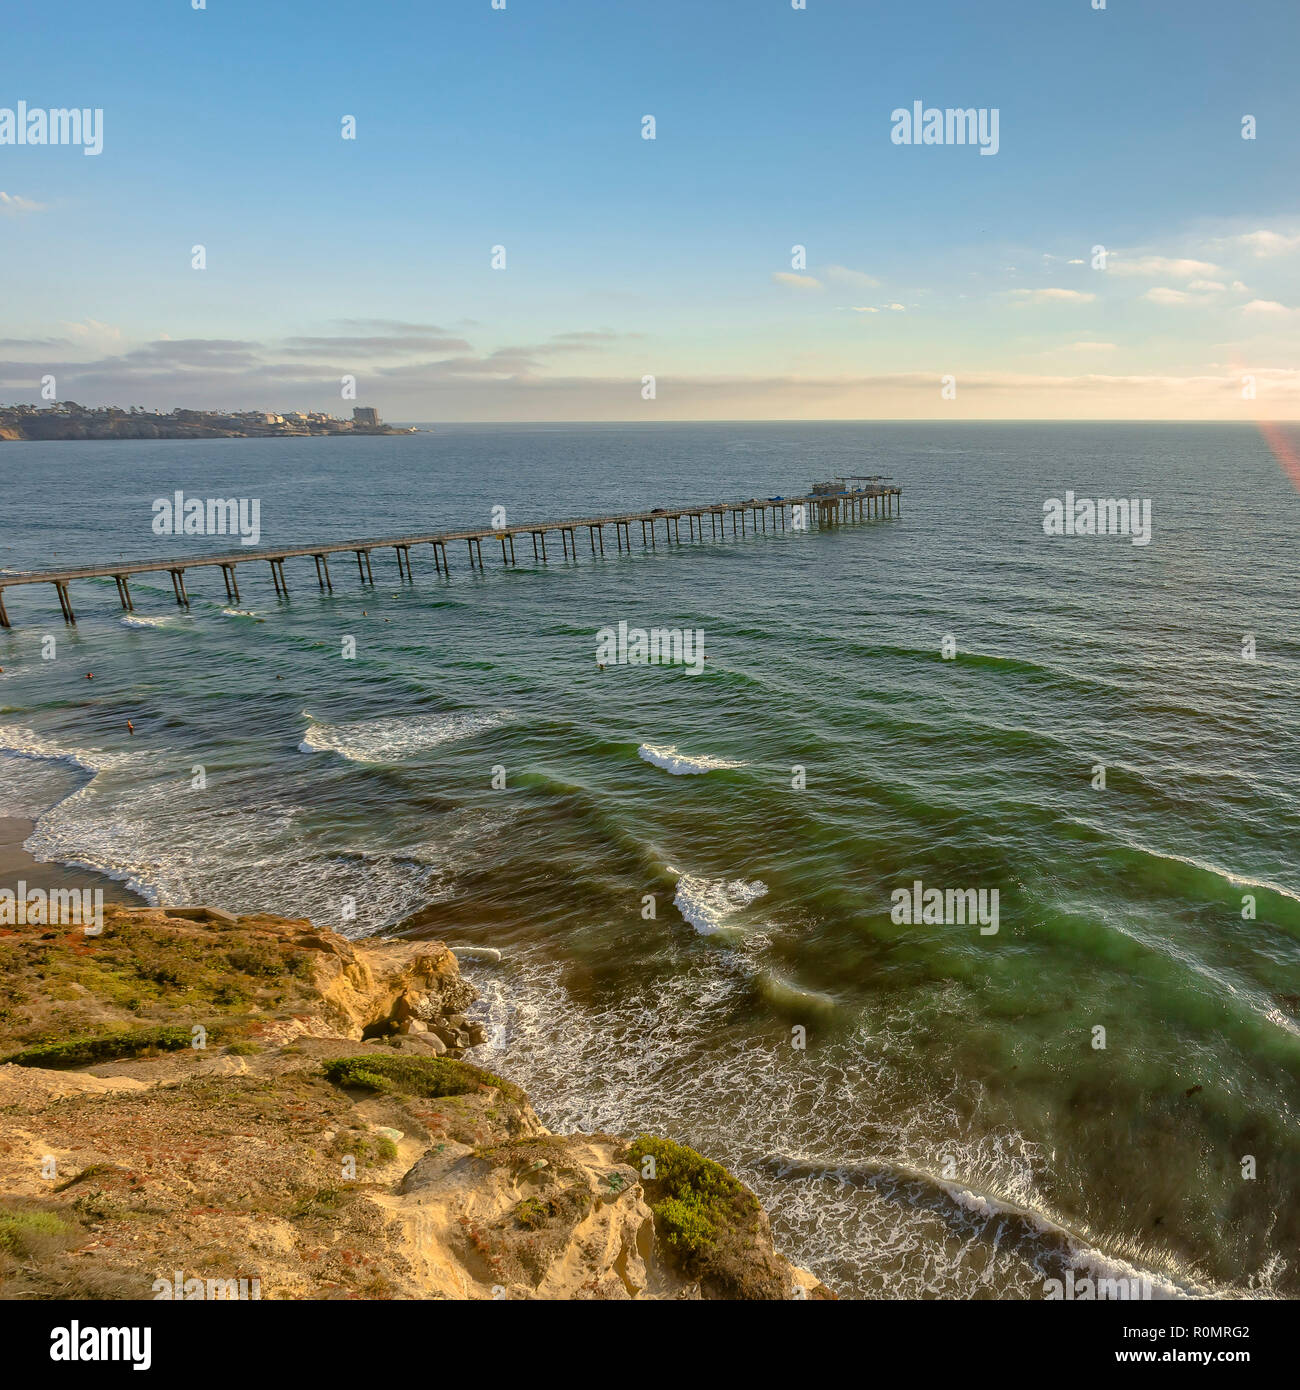 Scripps Pier in the coast of San Diego California - Stock Image